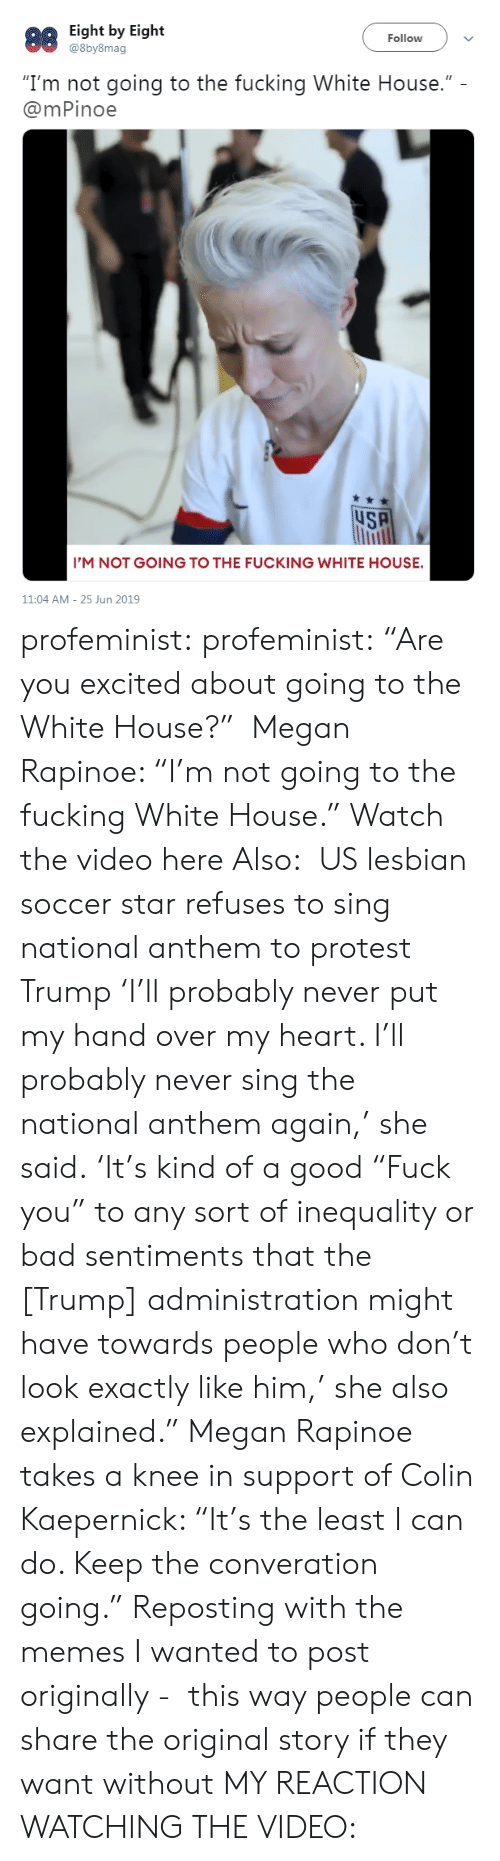 "inequality: Eight by Eight  @8by8mag  88  Follow  ""I'm not going to the fucking White House.""  @mPinoe  uSA  I'M NOT GOING TO THE FUCKING WHITE HOUSE.  11:04 AM 25 Jun 2019 profeminist: profeminist:  ""Are you excited about going to the White House?""  Megan Rapinoe: ""I'm not going to the fucking White House."" Watch the video here  Also:  US lesbian soccer star refuses to sing national anthem to protest Trump 'I'll probably never put my hand over my heart. I'll probably never sing the national anthem again,' she said. 'It's kind of a good ""Fuck you"" to any sort of inequality or bad sentiments that the [Trump] administration might have towards people who don't look exactly like him,' she also explained."" Megan Rapinoe takes a knee in support of Colin Kaepernick: ""It's the least I can do. Keep the converation going.""  Reposting with the memes I wanted to post originally -  this way people can share the original story if they want without MY REACTION WATCHING THE VIDEO:"